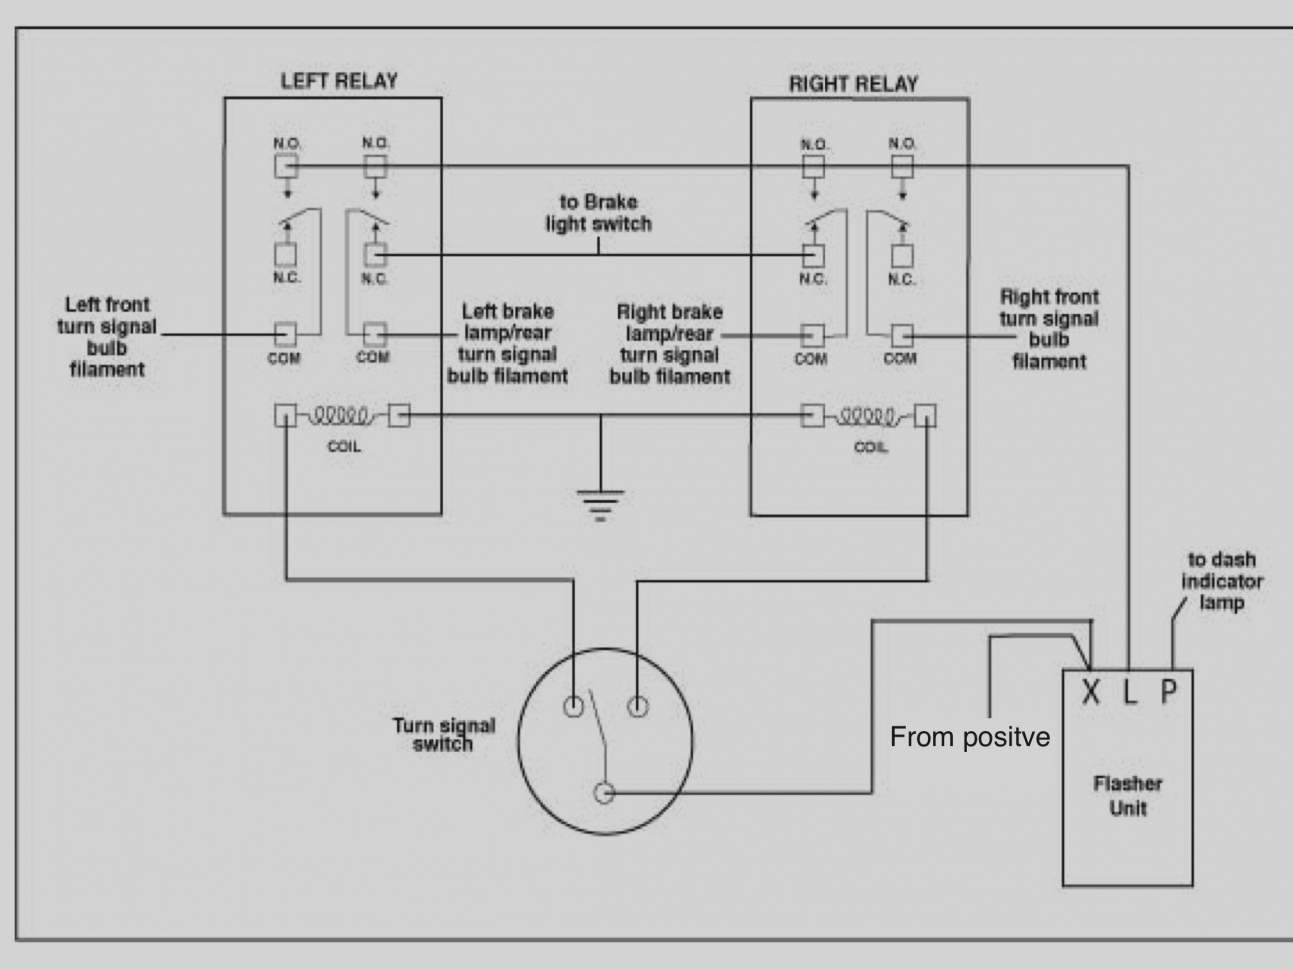 polaris rzr wiring diagram 2 sg dbd de \u2022polaris rzr wiring diagram images gallery